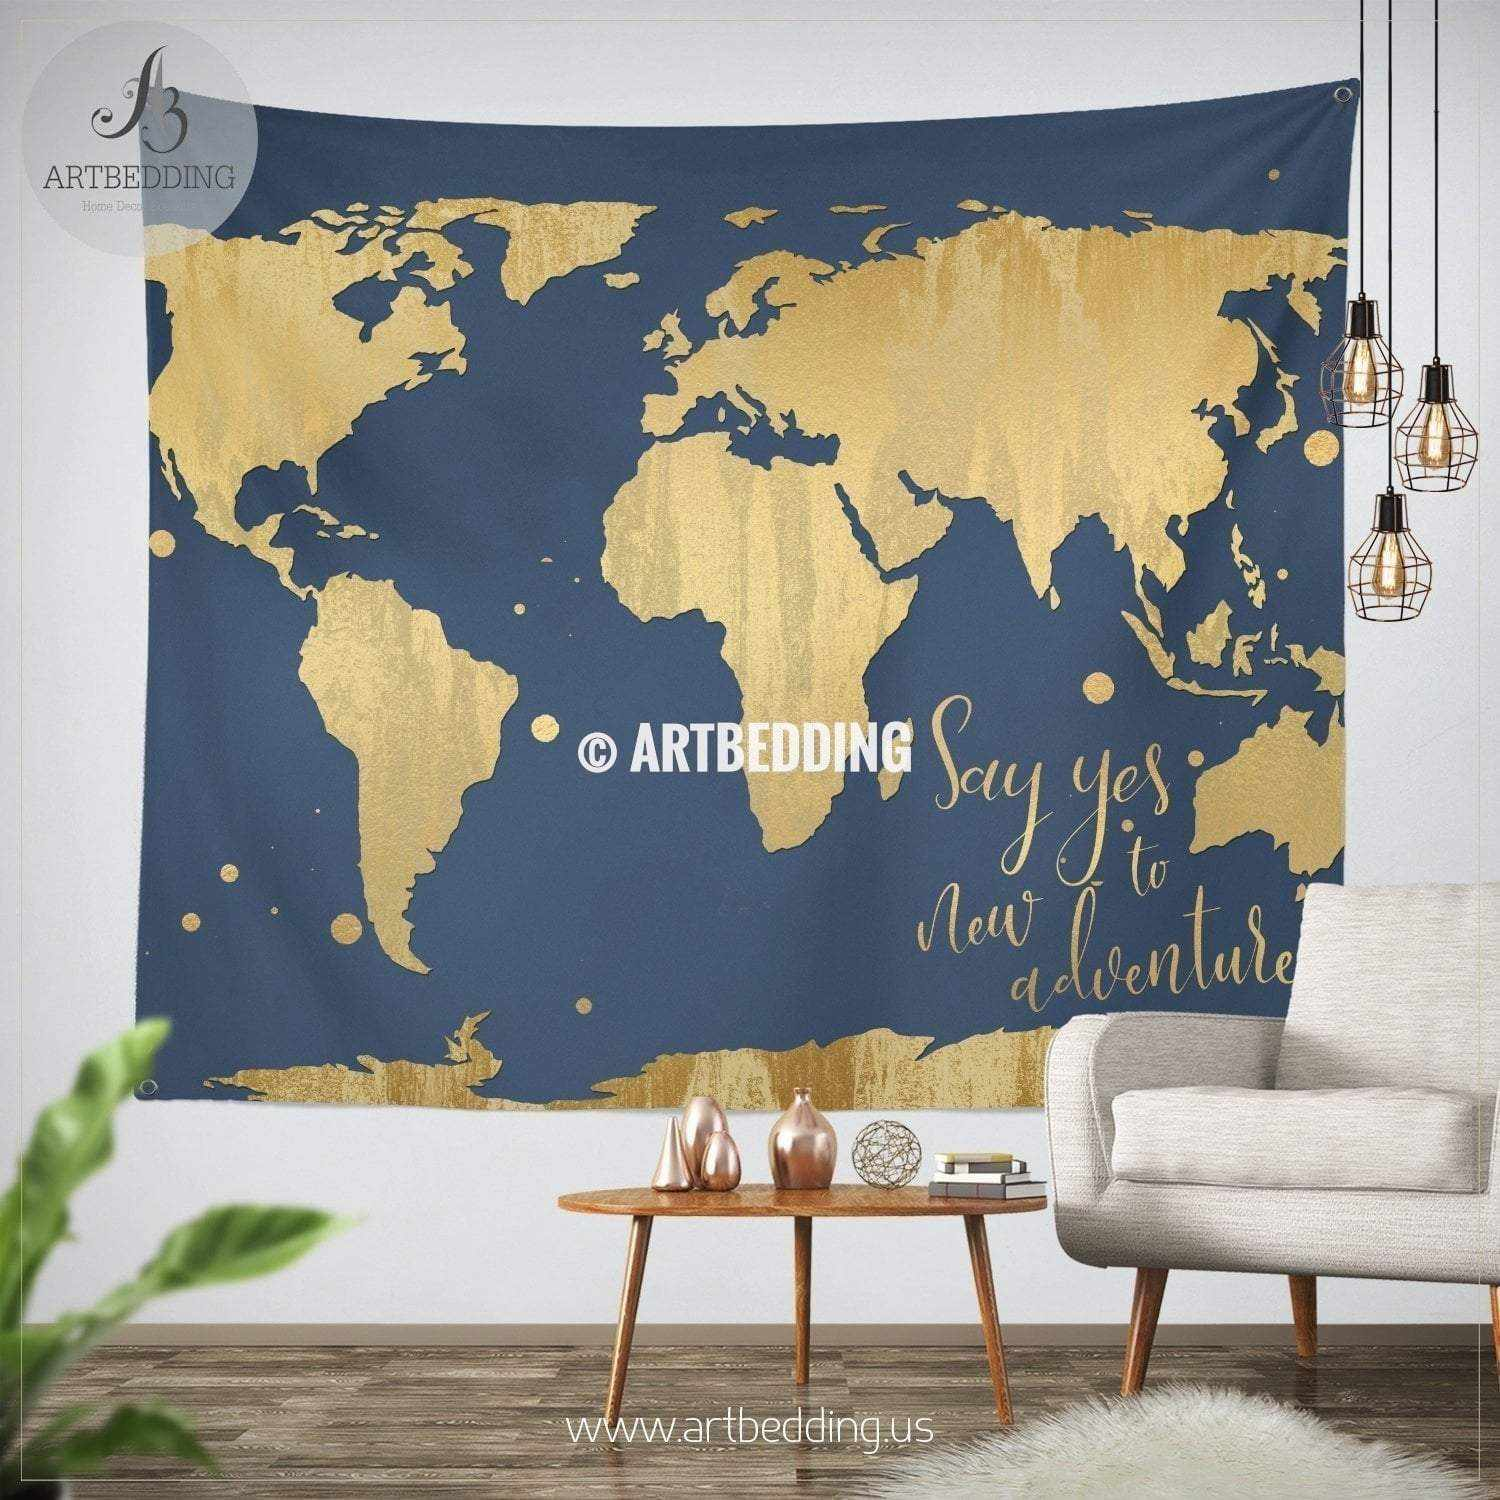 Lets get lost gold world map wall tapestry boho blush pink adventure gold world map wall tapestry boho blue adventure world map wall hanging bohemian gumiabroncs Image collections